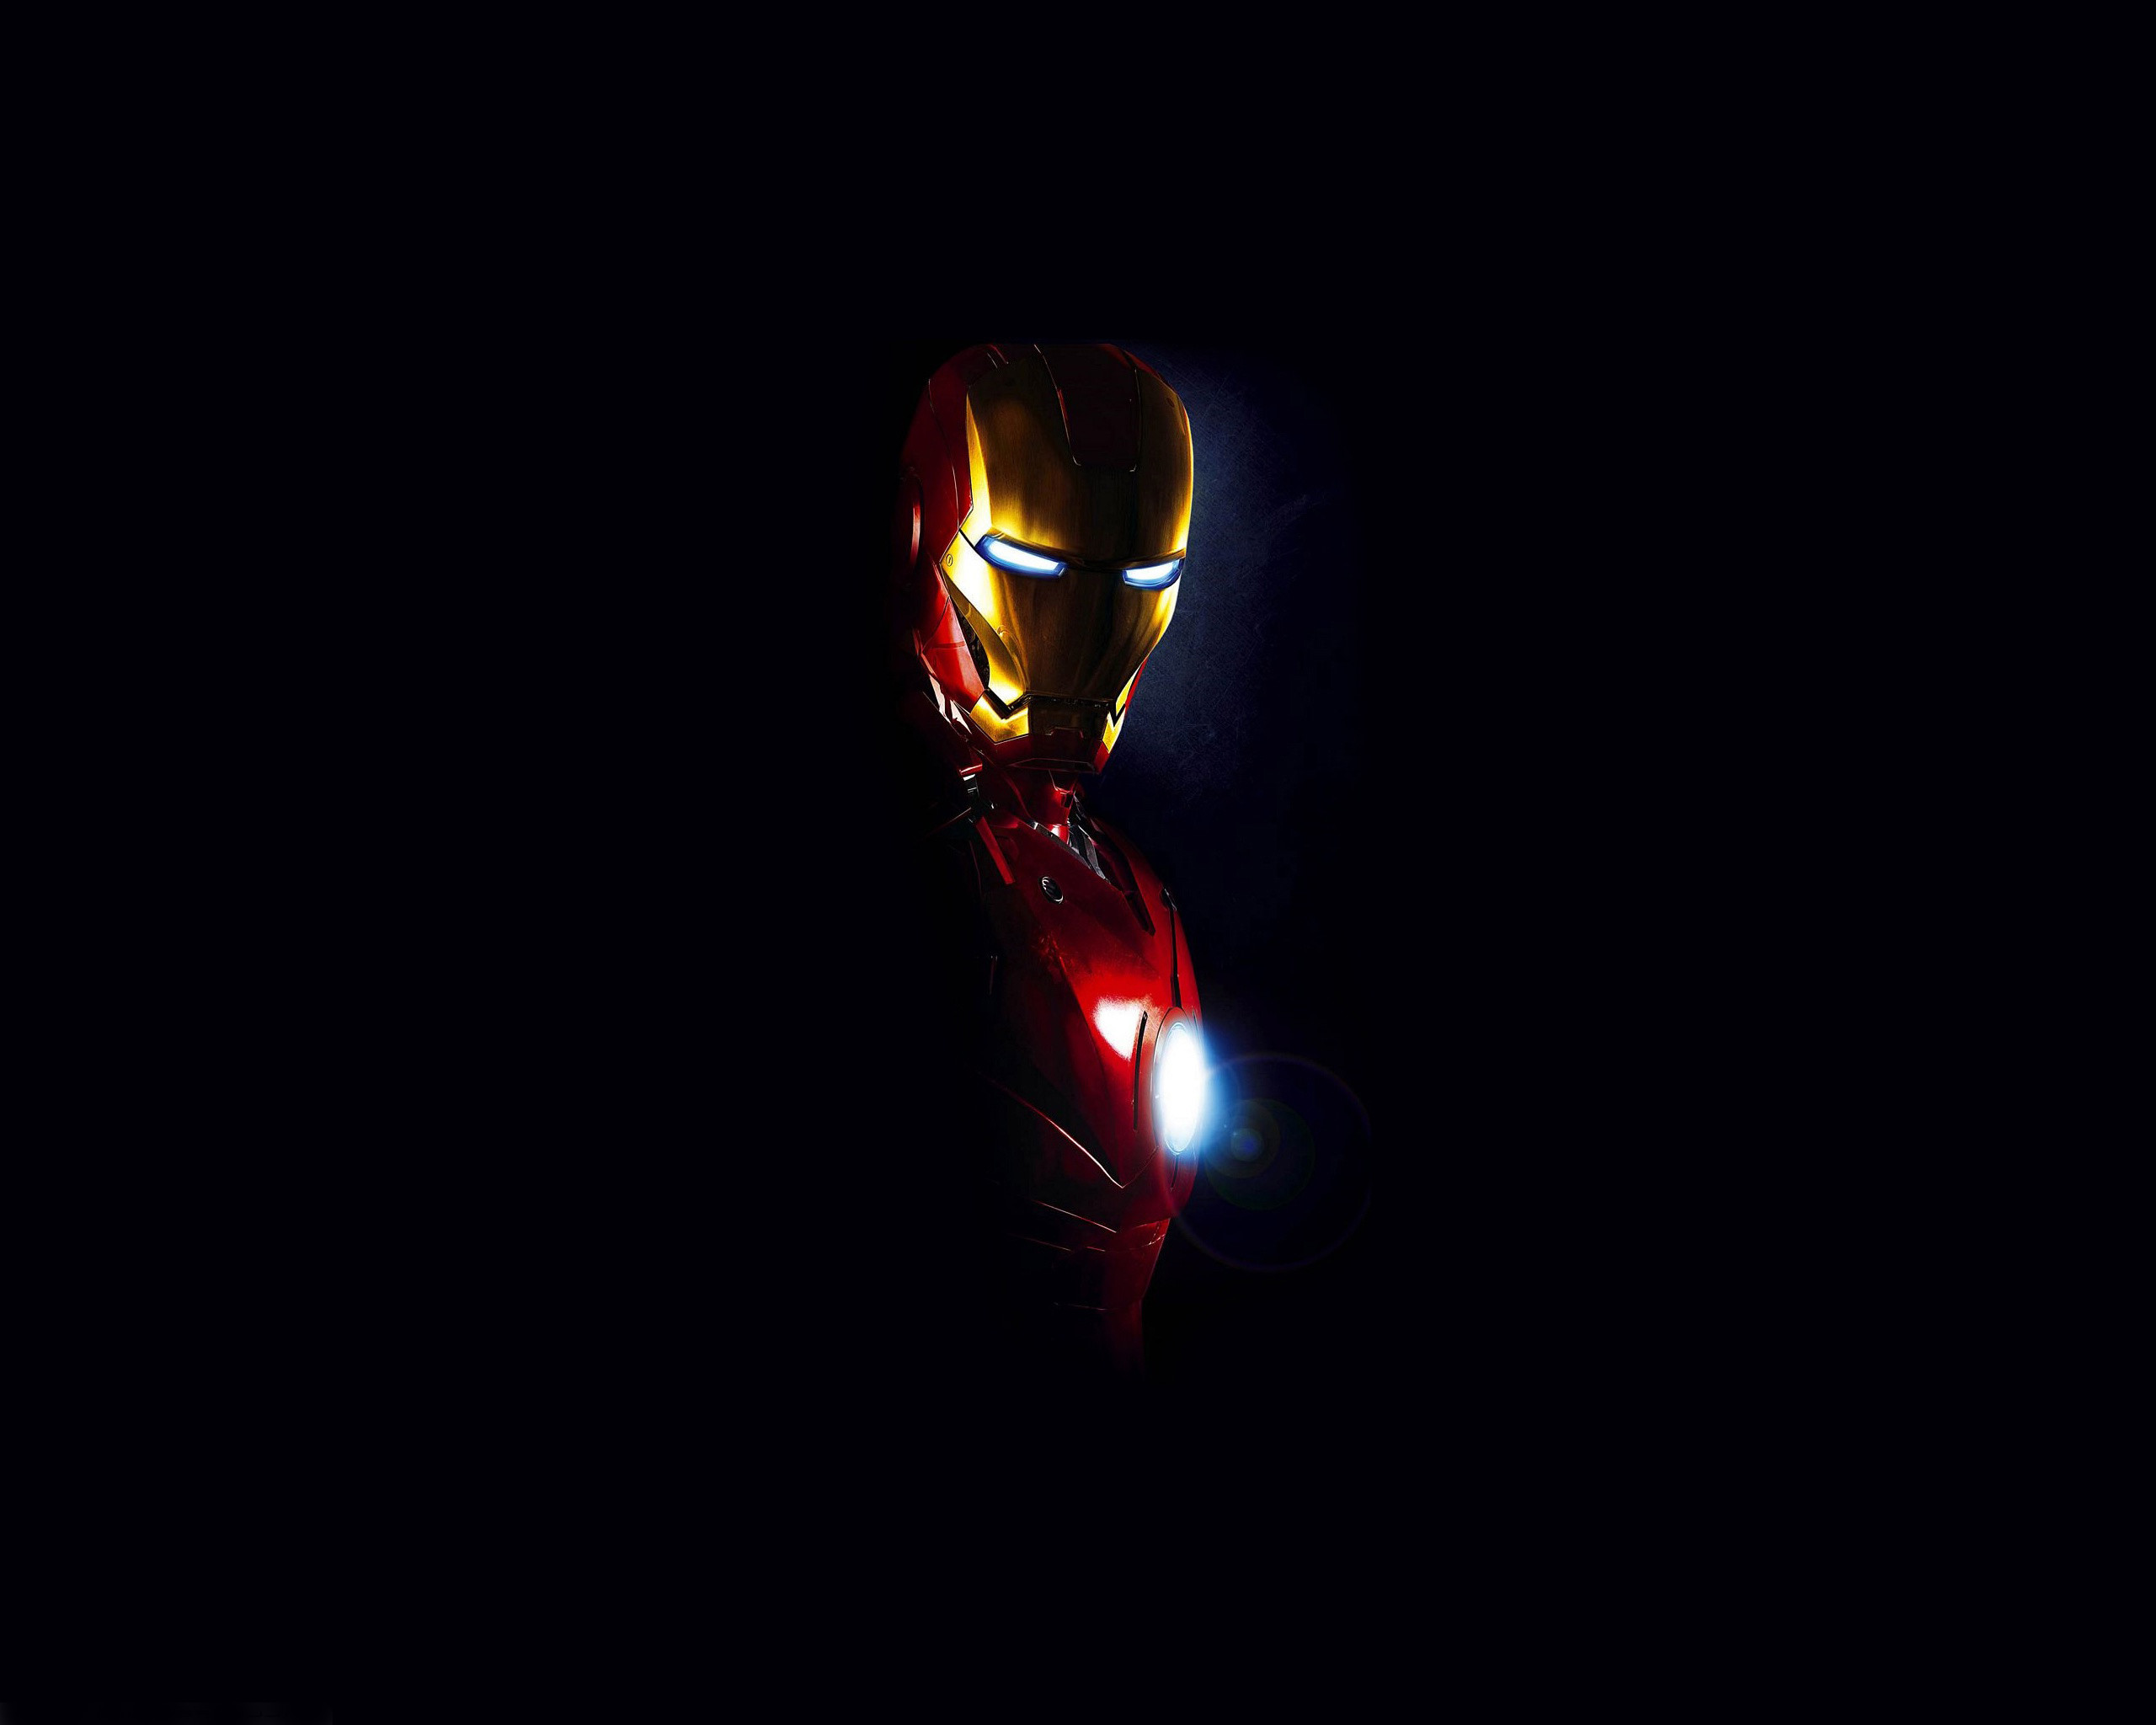 Desktop Wallpaper High Definition in 1080p with Iron Man Photos Download